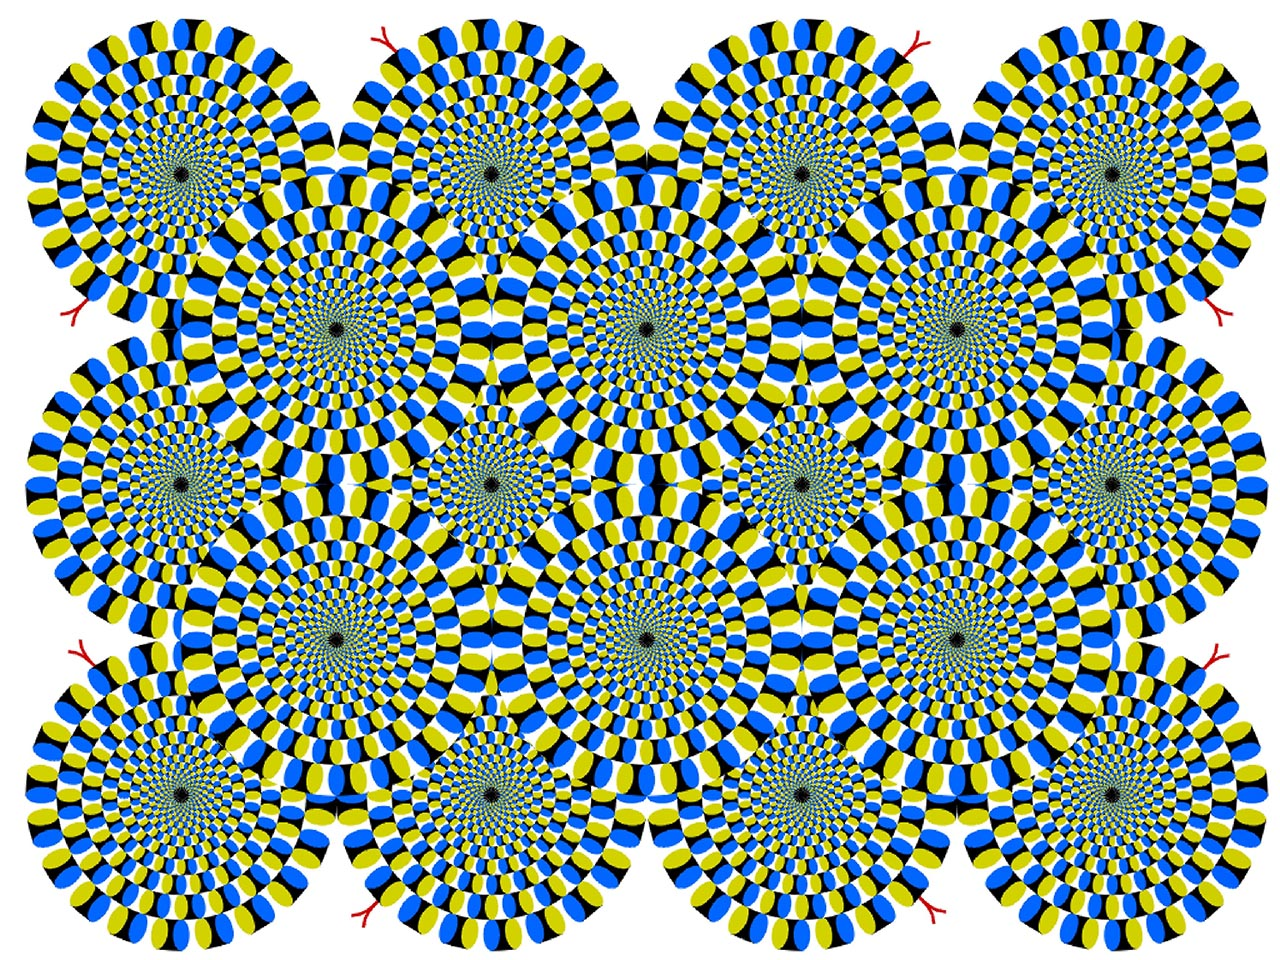 **MANDATORY BYLINE** PIC BY AKIYOSHI KITAOKA / CATERS NEWS (PICTURED: ROTATING SNAKES - CIRCULAR SNAKES APPEAR TO ROTATE SPONTANEOUSLY) - These are the mind-blowing artworks of one professor who has dedicated his professional life to studying and generating a series of dizzying optical illusions. Professor Akiyoshi Kitaoka, from Ritsumseikan University, in Kyoto, Japan, has spent more than a decade creating his collecting of stomach-churning works. His designs have been used by the likes of Lady Gaga, who ran the Kitaokas work, entitled Gangaze, as the CD cover for her album Art Pop, in 2013.SEE CATERS COPY